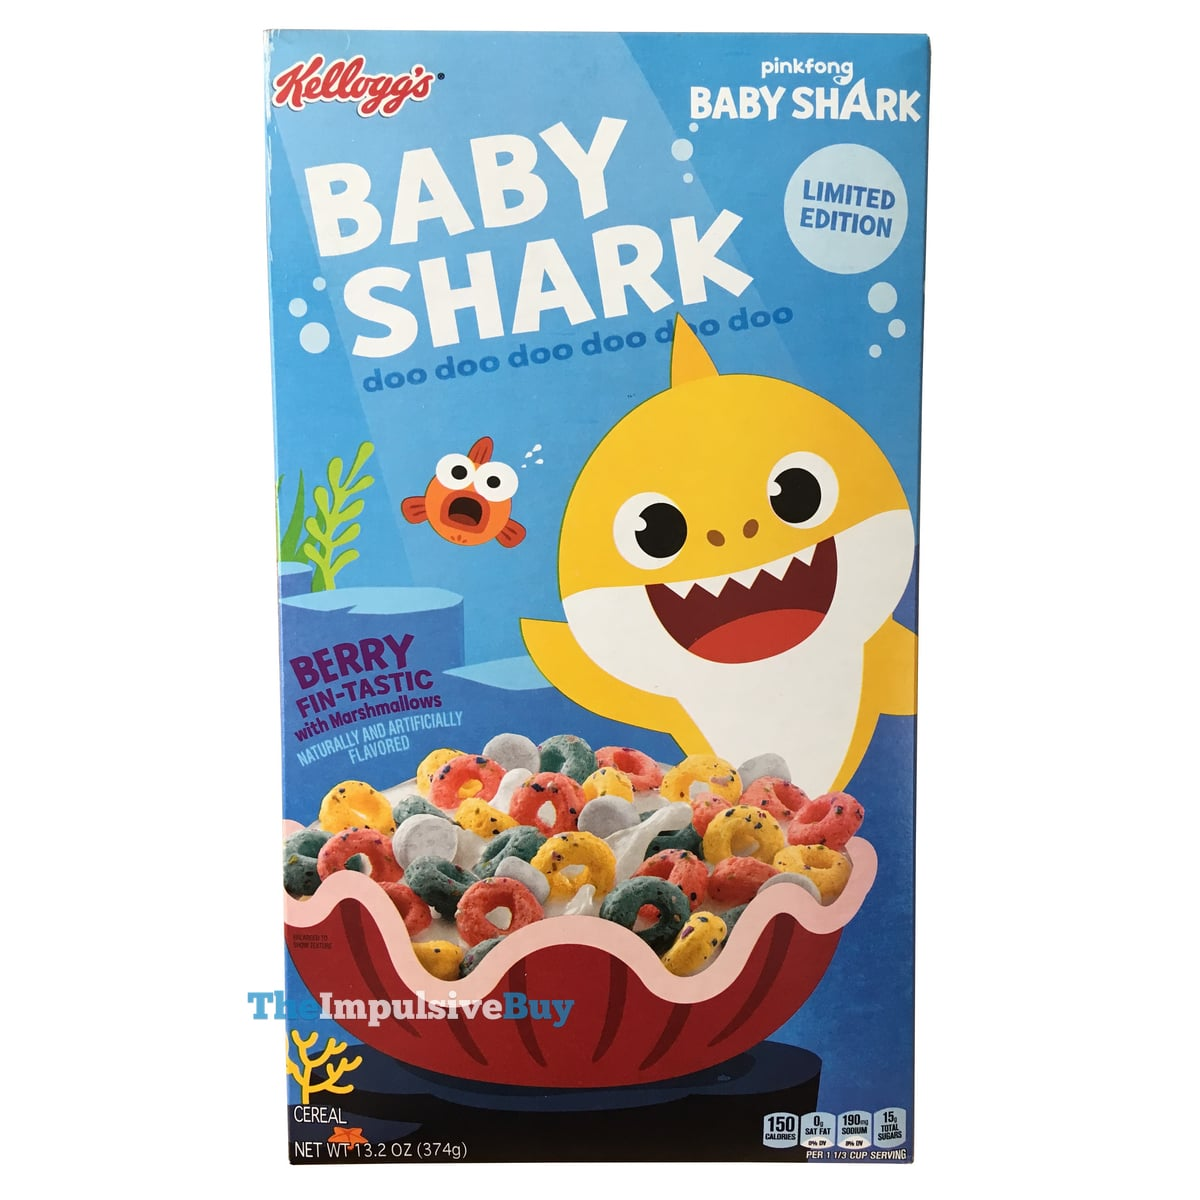 REVIEW: Kellogg's Limited Edition Baby Shark Cereal